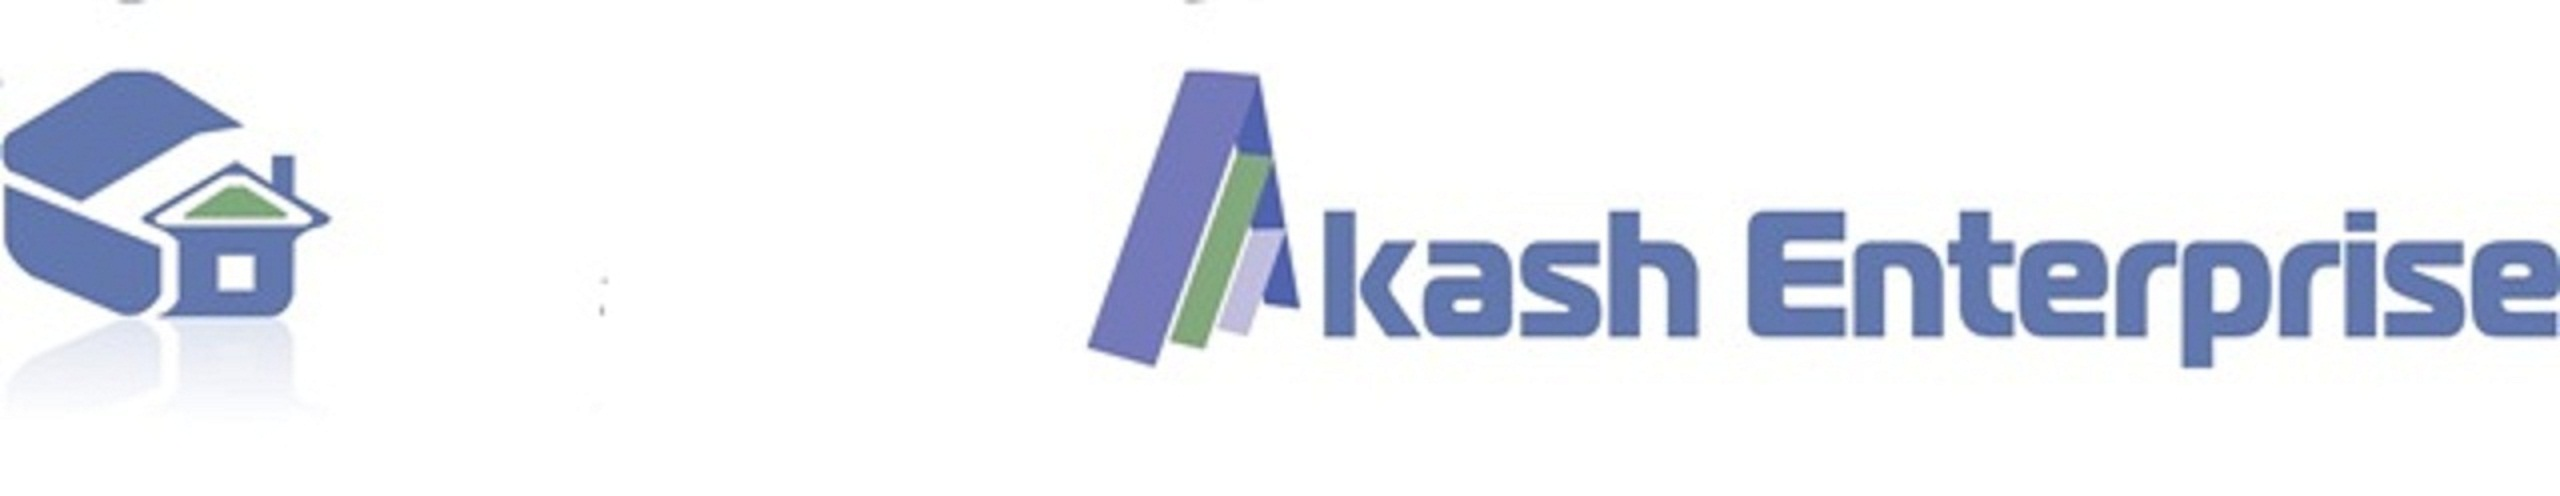 Akash Enterprise - logo